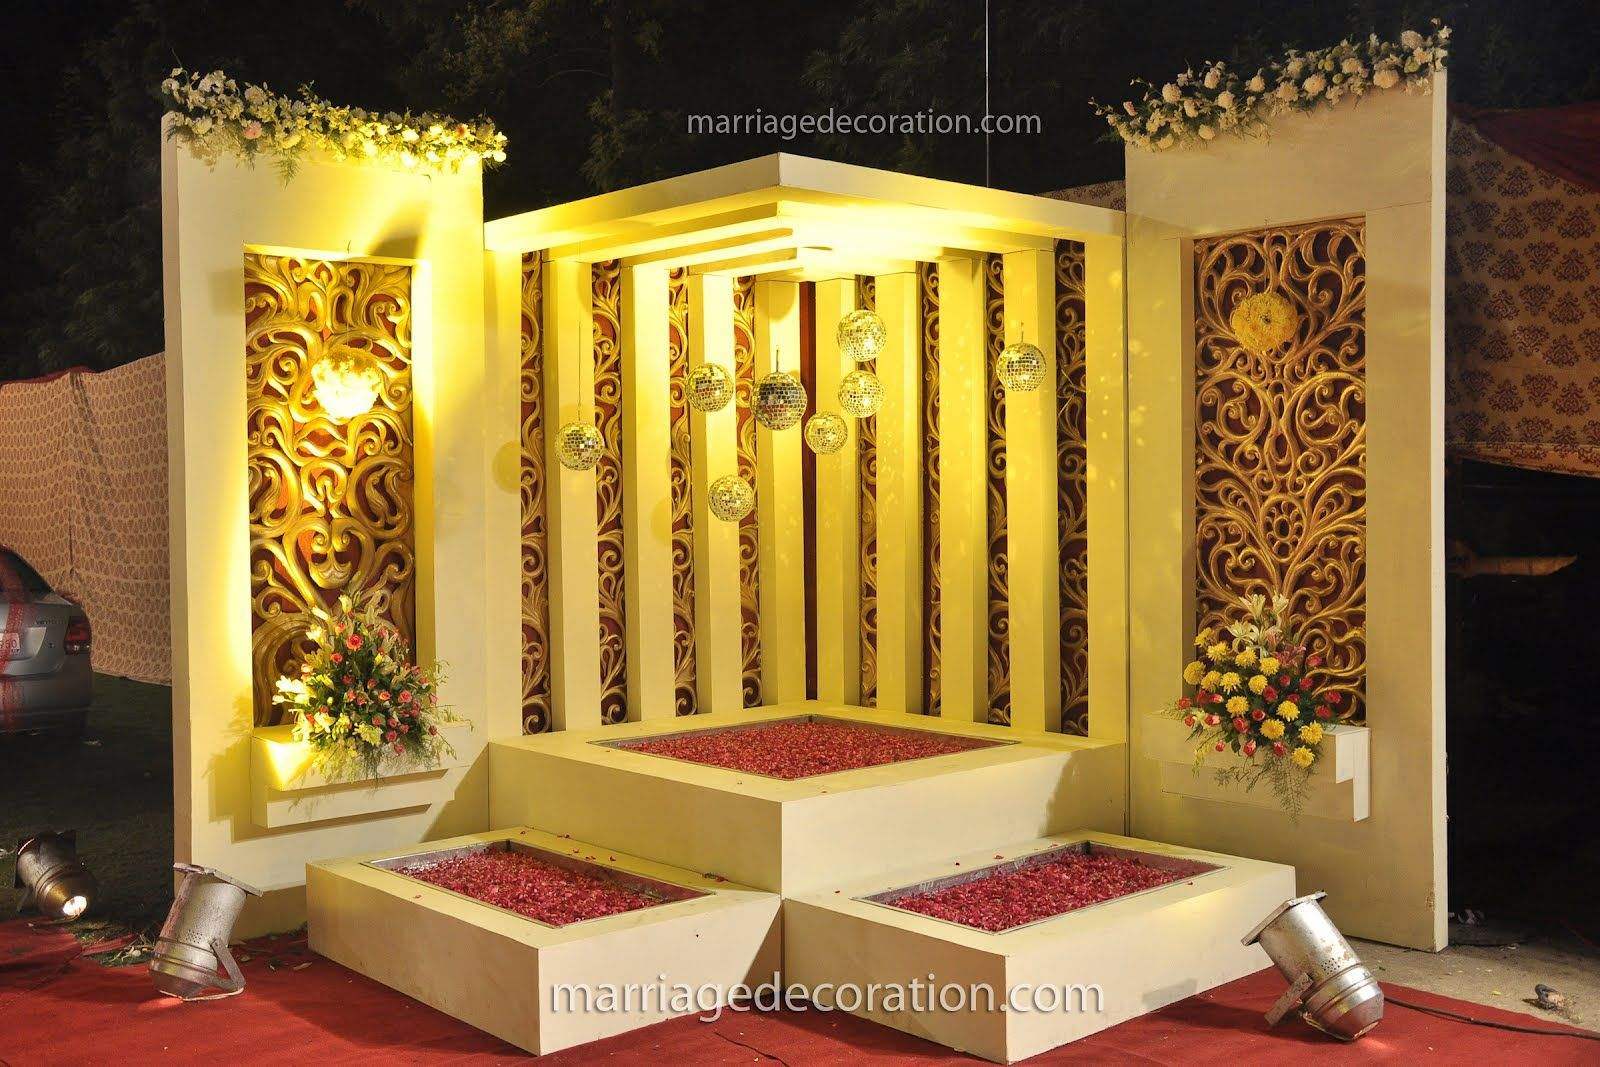 Kerala wedding stage decoration wedding decorations ideas wedding kerala wedding stage decoration wedding decorations ideas wedding stage decoration wedding stage decoration india wedding 1600x1067 junglespirit